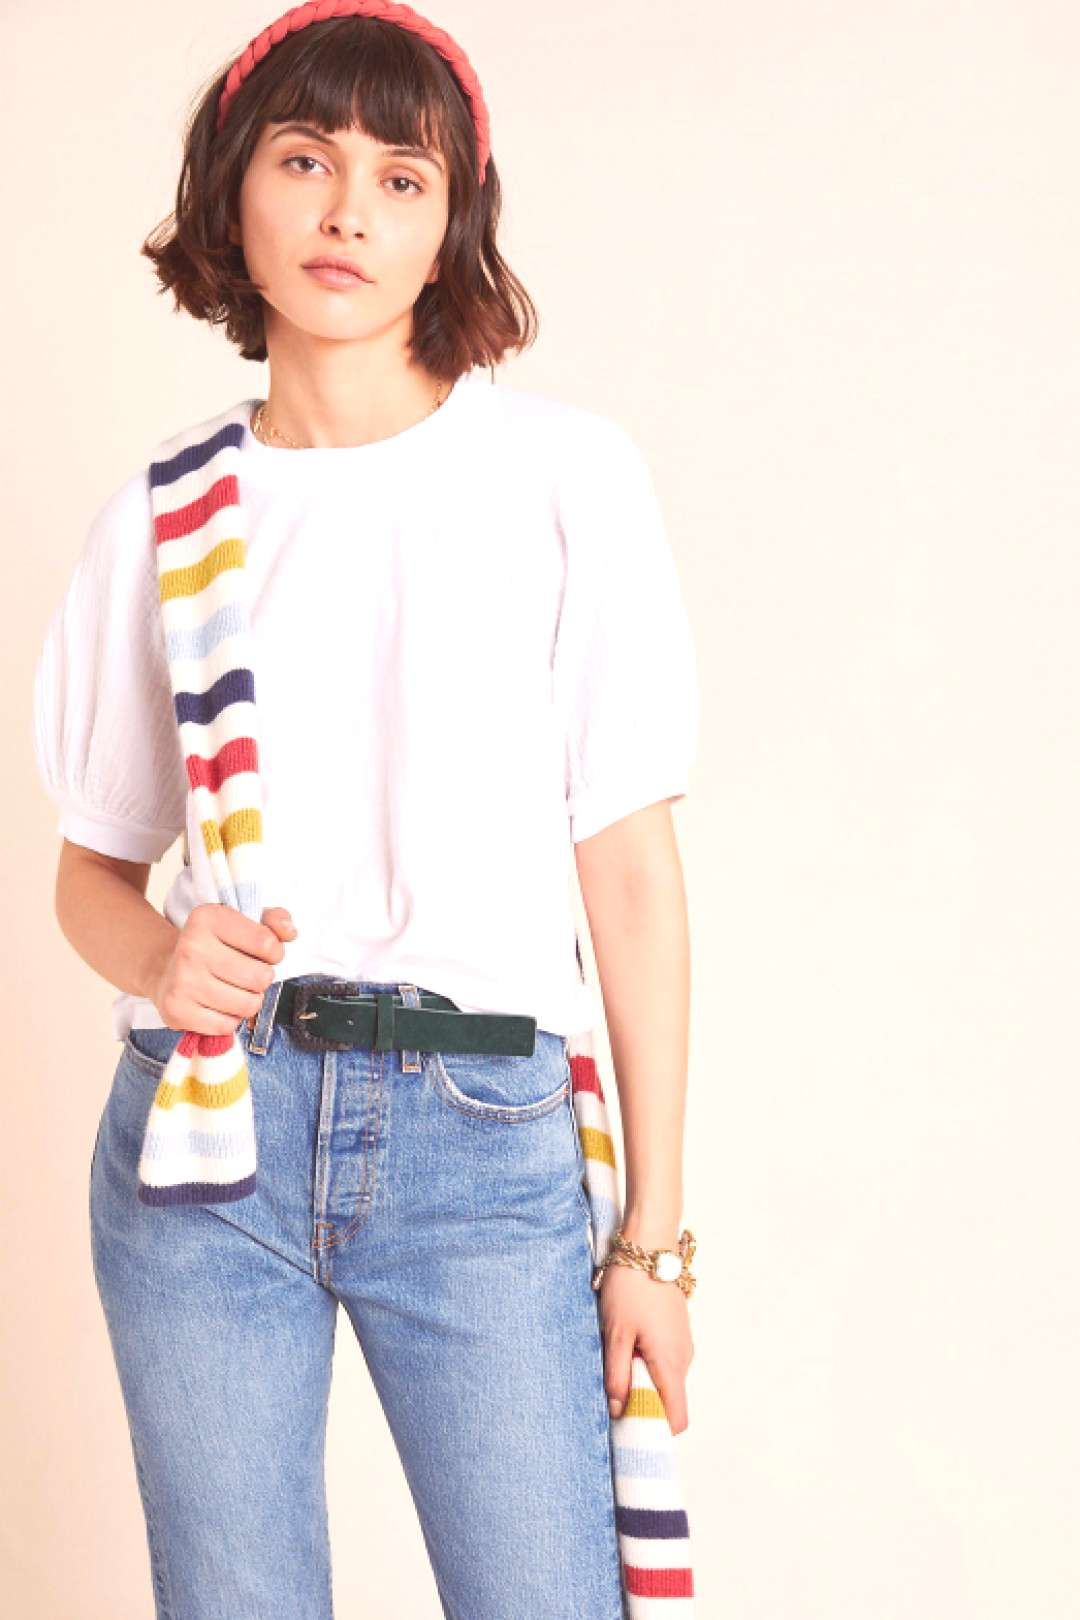 Stila Puff-Sleeved Top by Velvet Graham & Spencer in White Size: Xs Women's Tops at Anthropologie